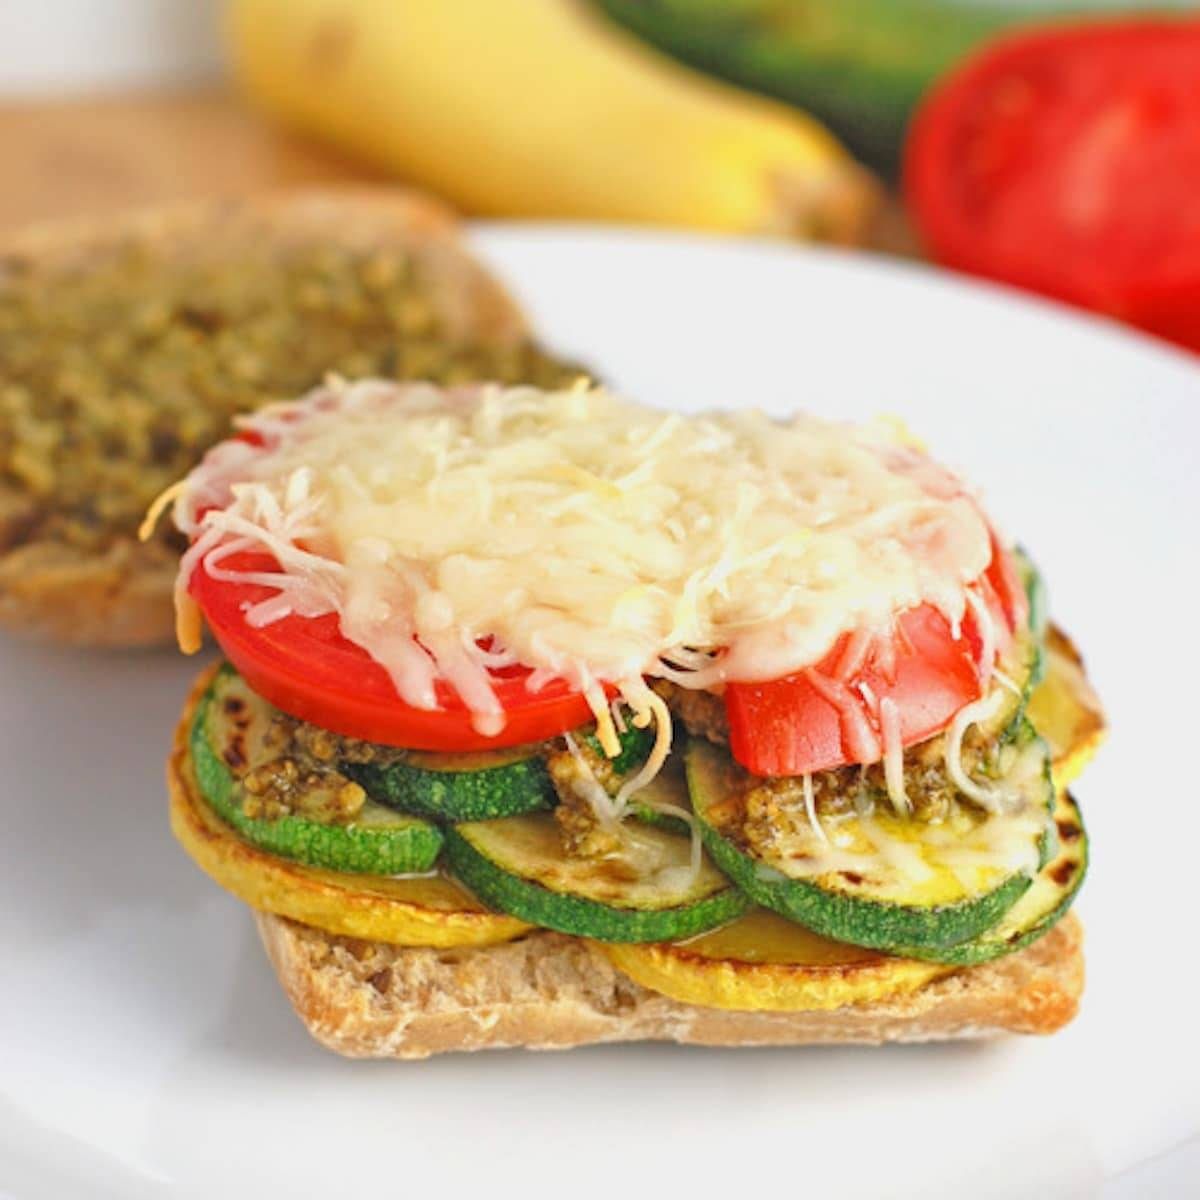 Parmesan and pesto make this grilled veggie sandwich full of flavor! Just a few ingredients and simple preparation to make this vegetarian meal. | pinchofyum.com